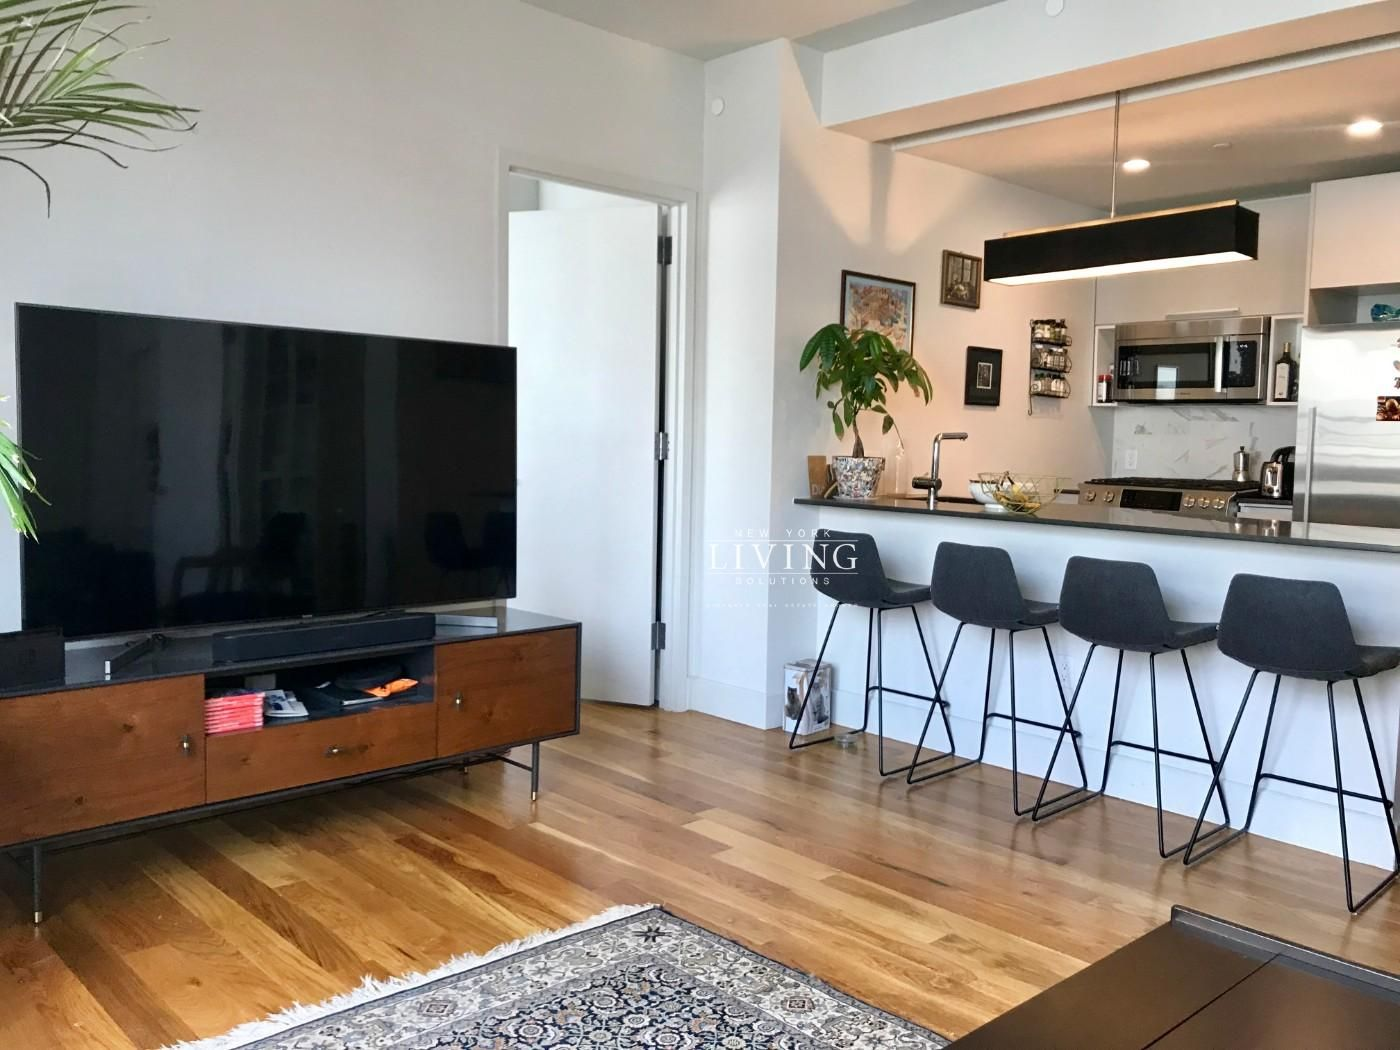 2 Bedrooms 1 Bathroom Apartment For Sale In Brooklyn Brooklyn Apartments For Rent Apartments For Rent Brooklyn Apartment